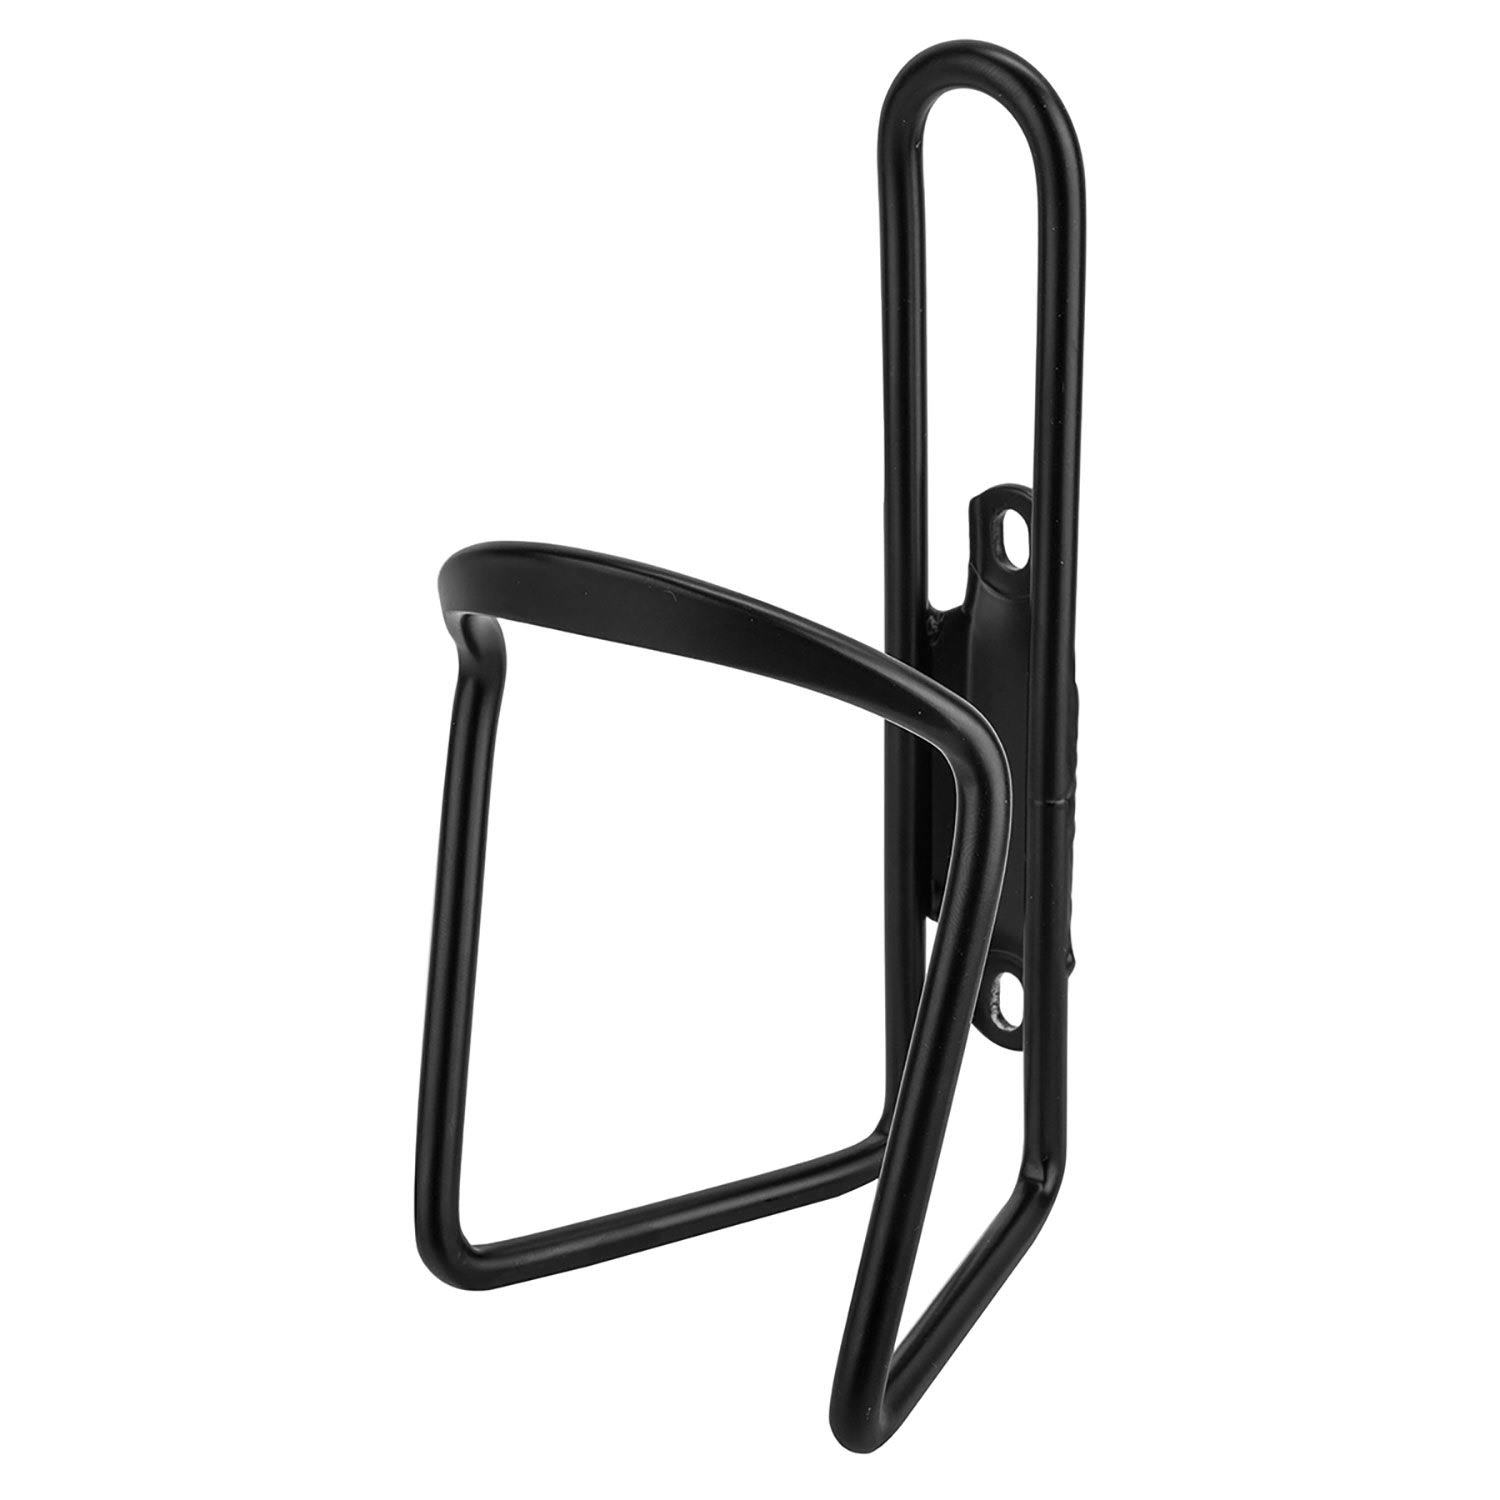 Sunlite Alloy Bottle Cage - Black, 6mm